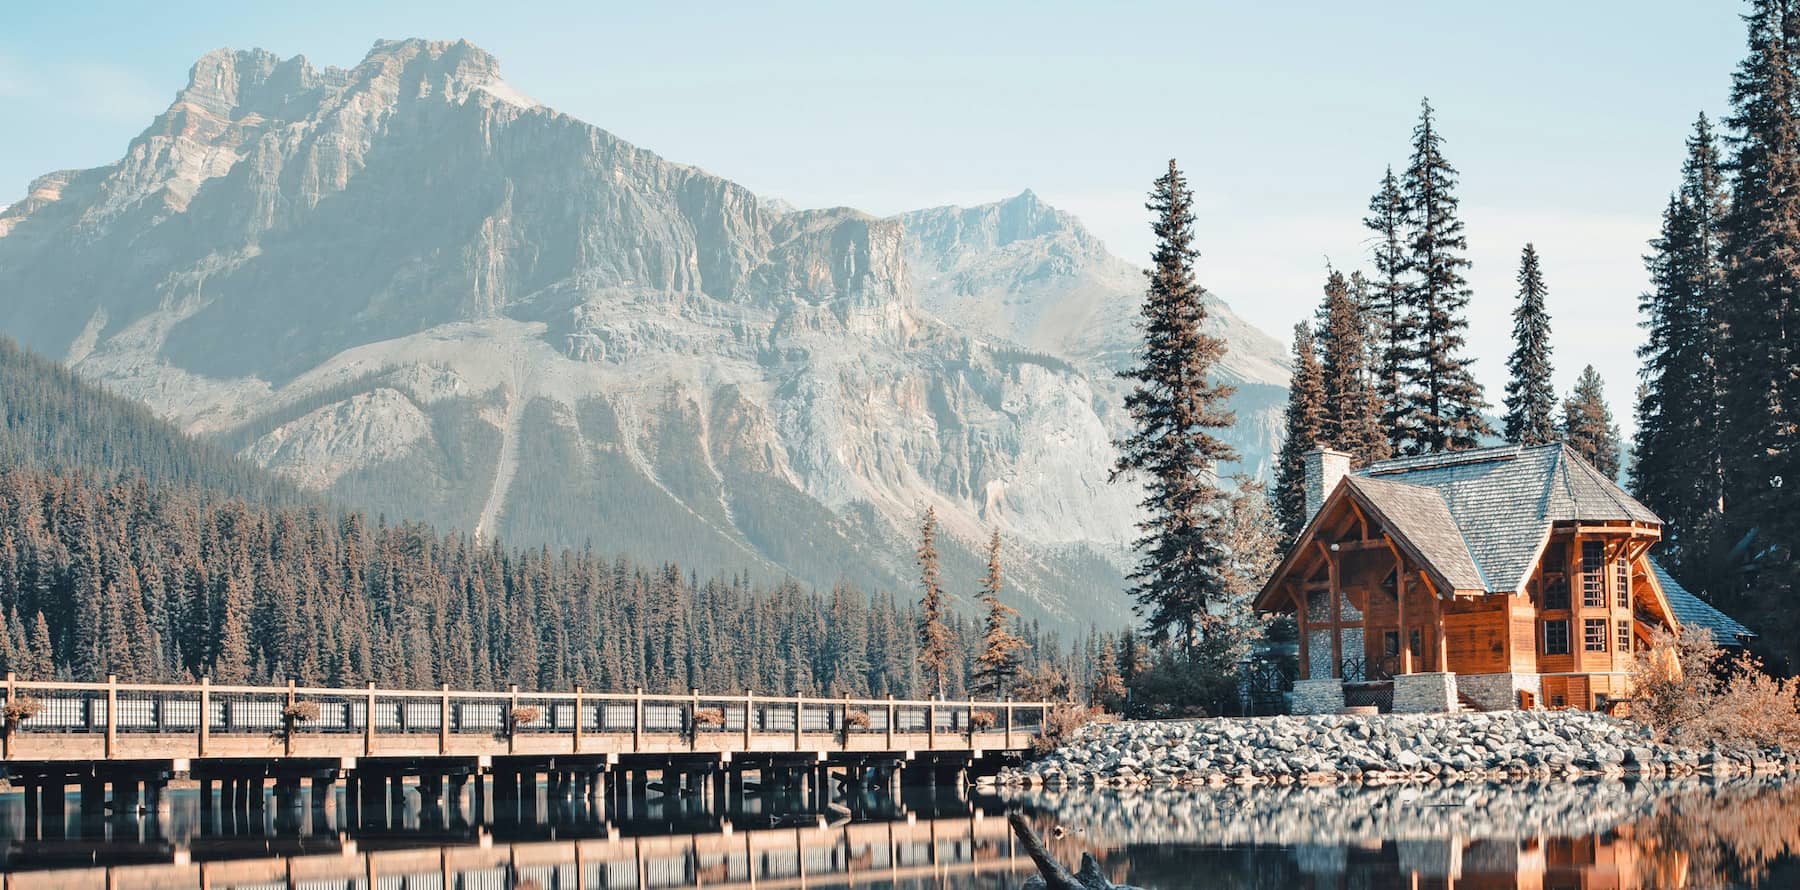 Large log home against the backdrop of large mountains - Outlast® CTA Products